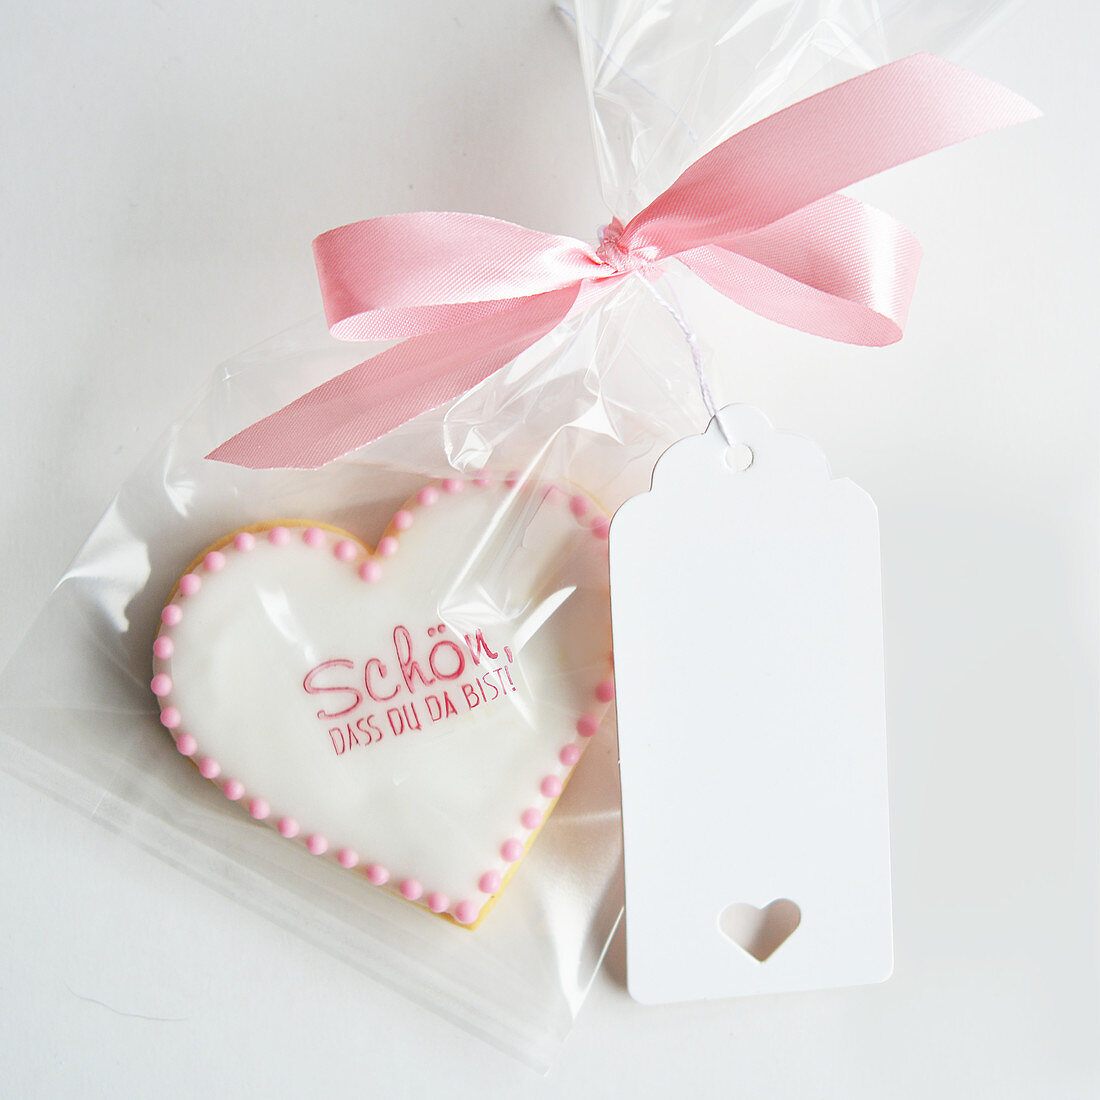 A biscuit with a saying packed in a cellophane bag with a pink bow